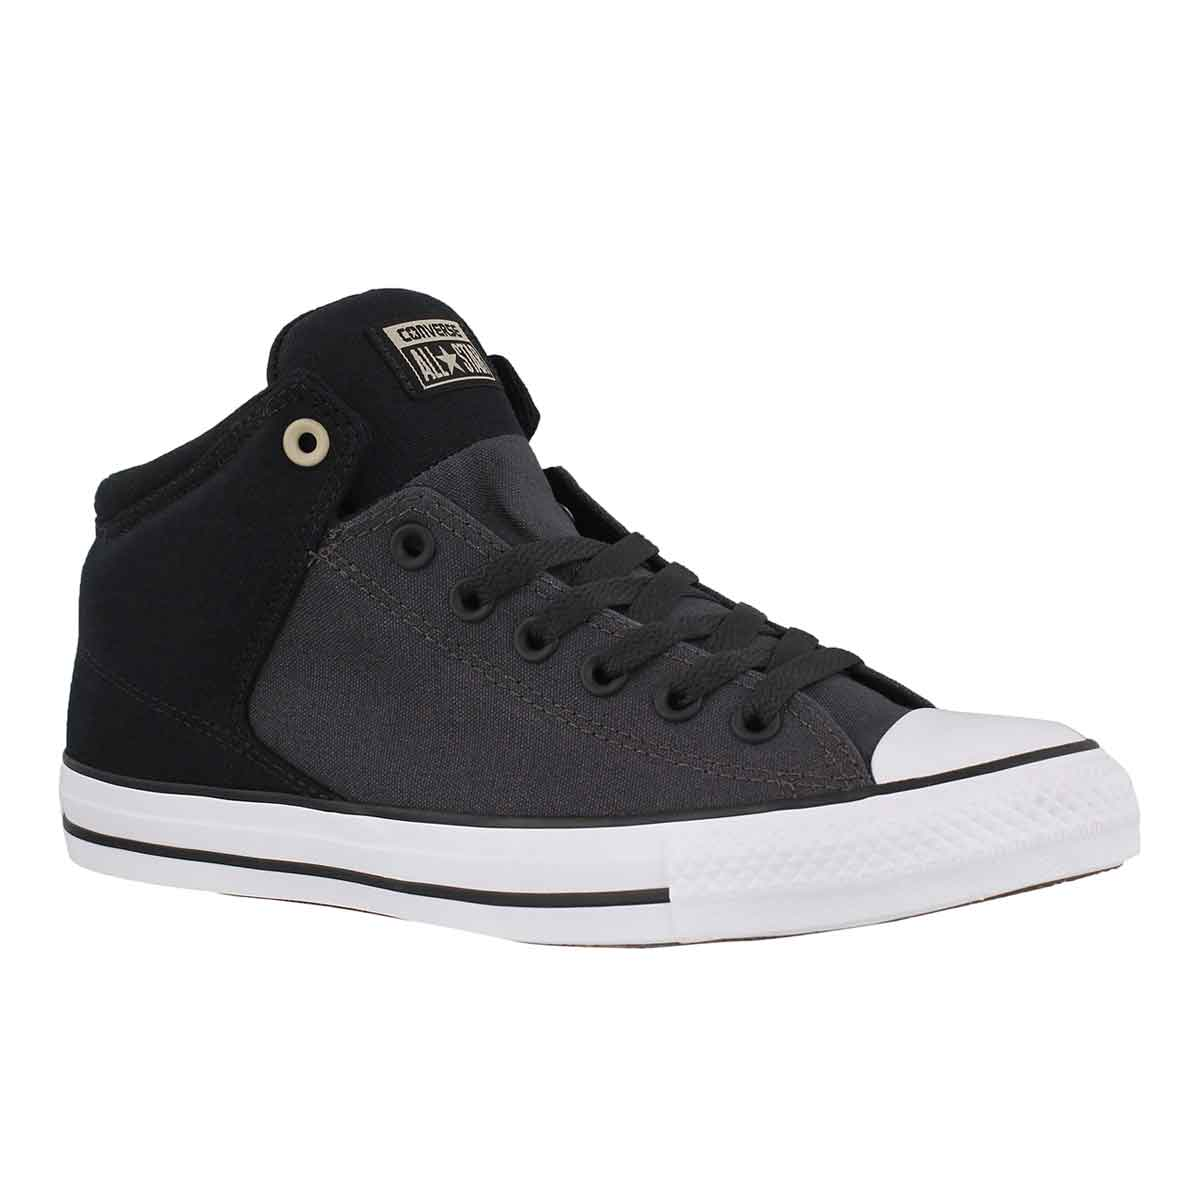 Men's CT ALL STAR HIGH STREET black/grey sneakers